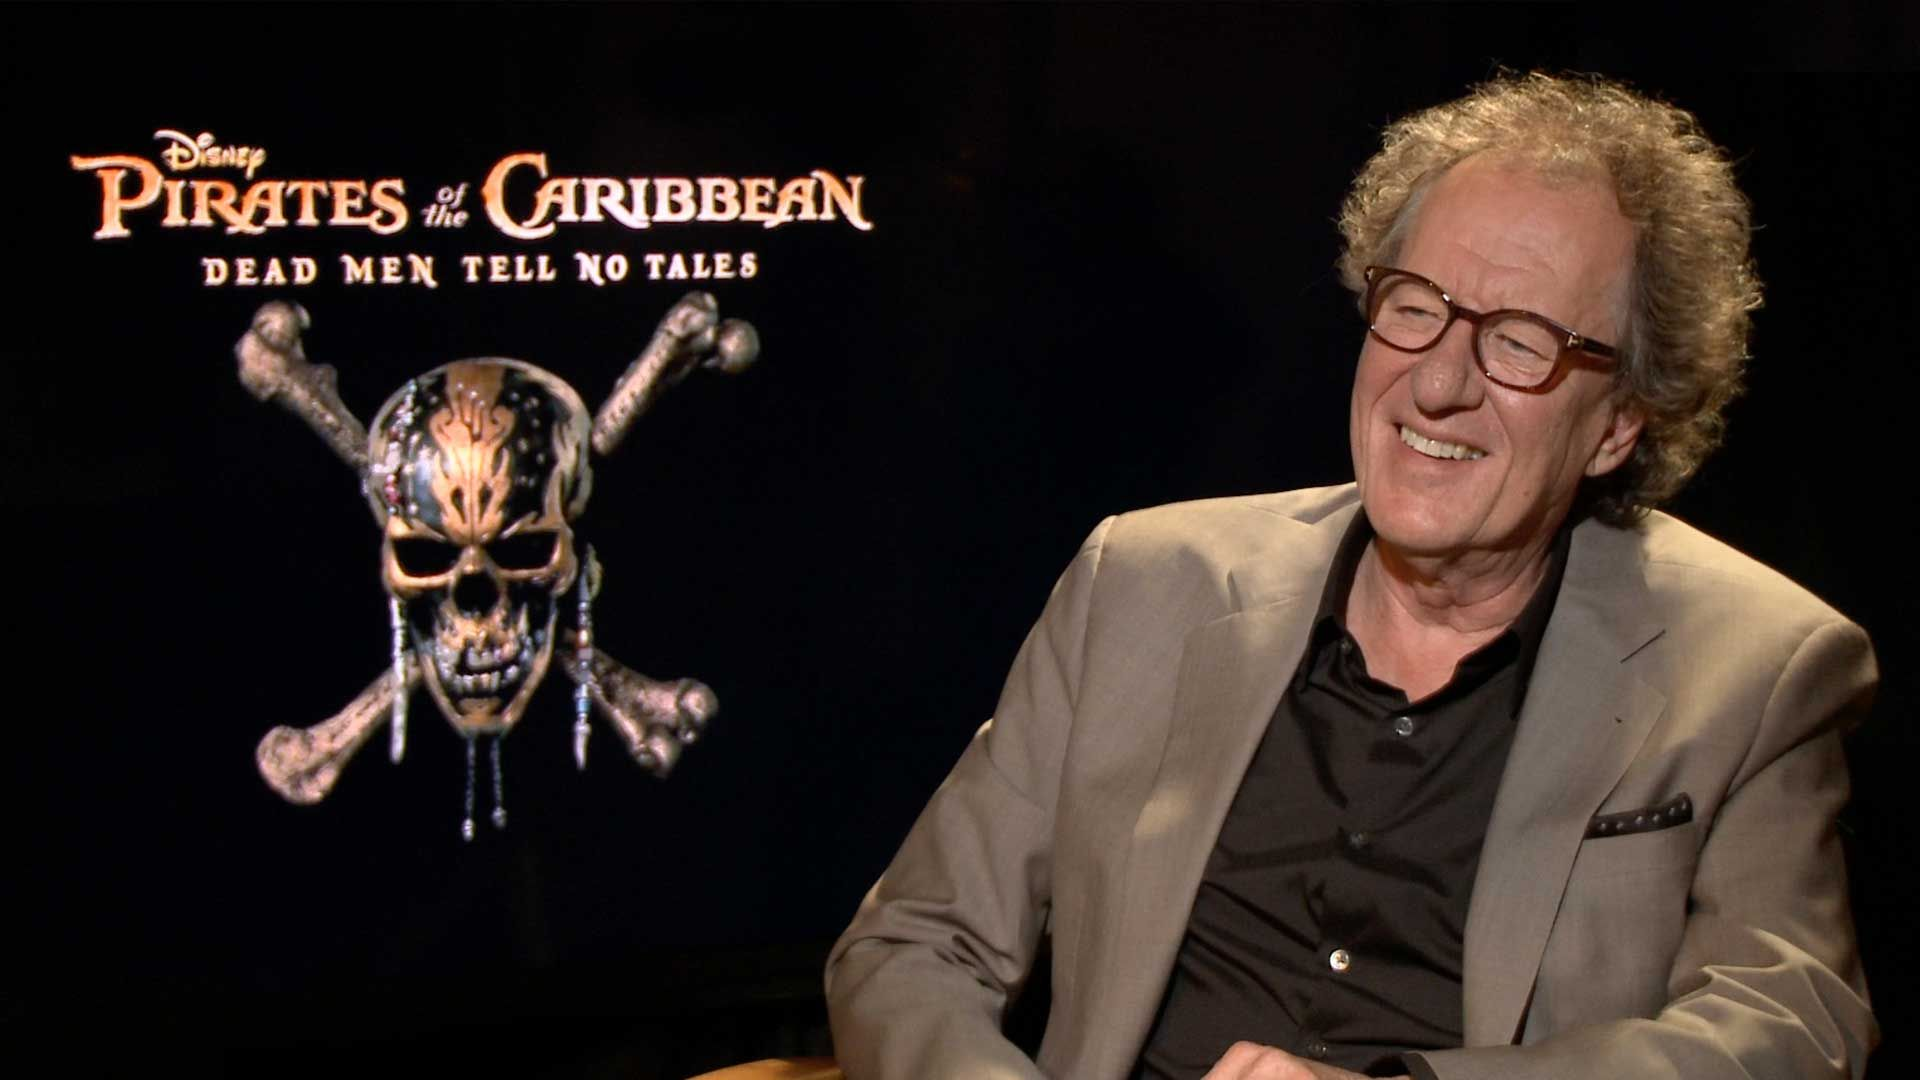 Pirates of the Caribbean 5 Cast Interview on Highs and Lows